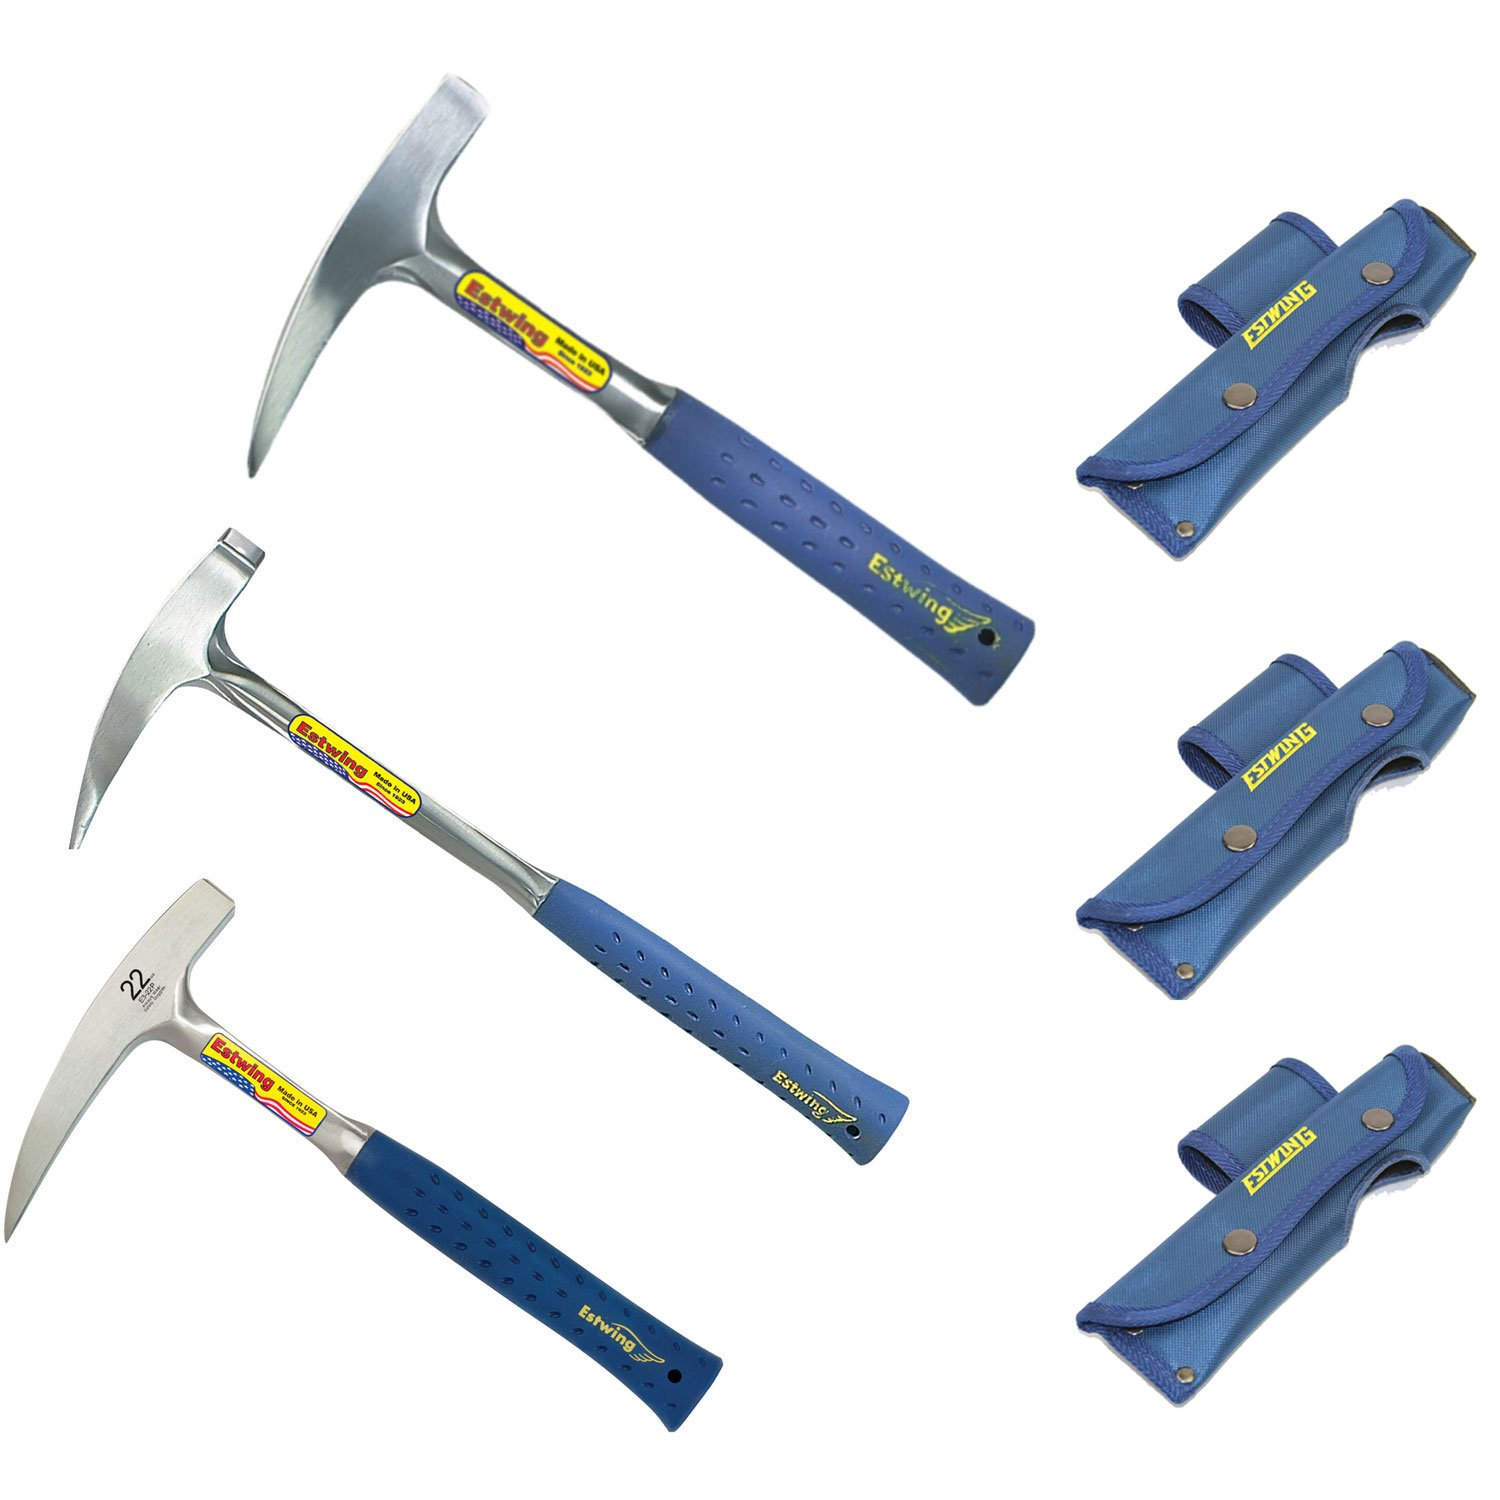 Estwing E3-22P Rock Pick, E3-14P Rock Pick, E3-23LP Long Handled Rock Pick by Estwing Mfg. Company